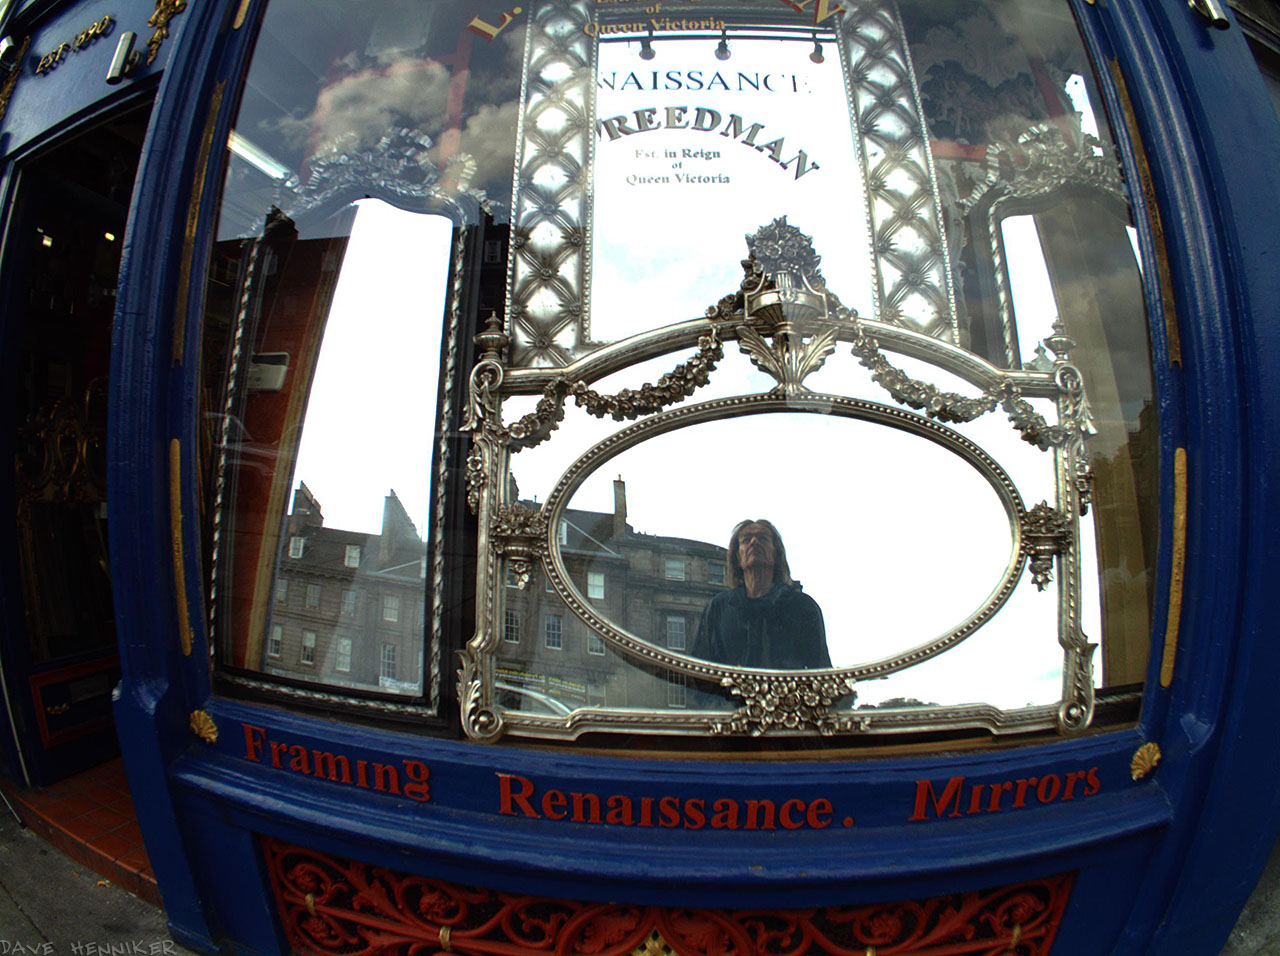 Another Autographer picture with a reflection of yours truly.